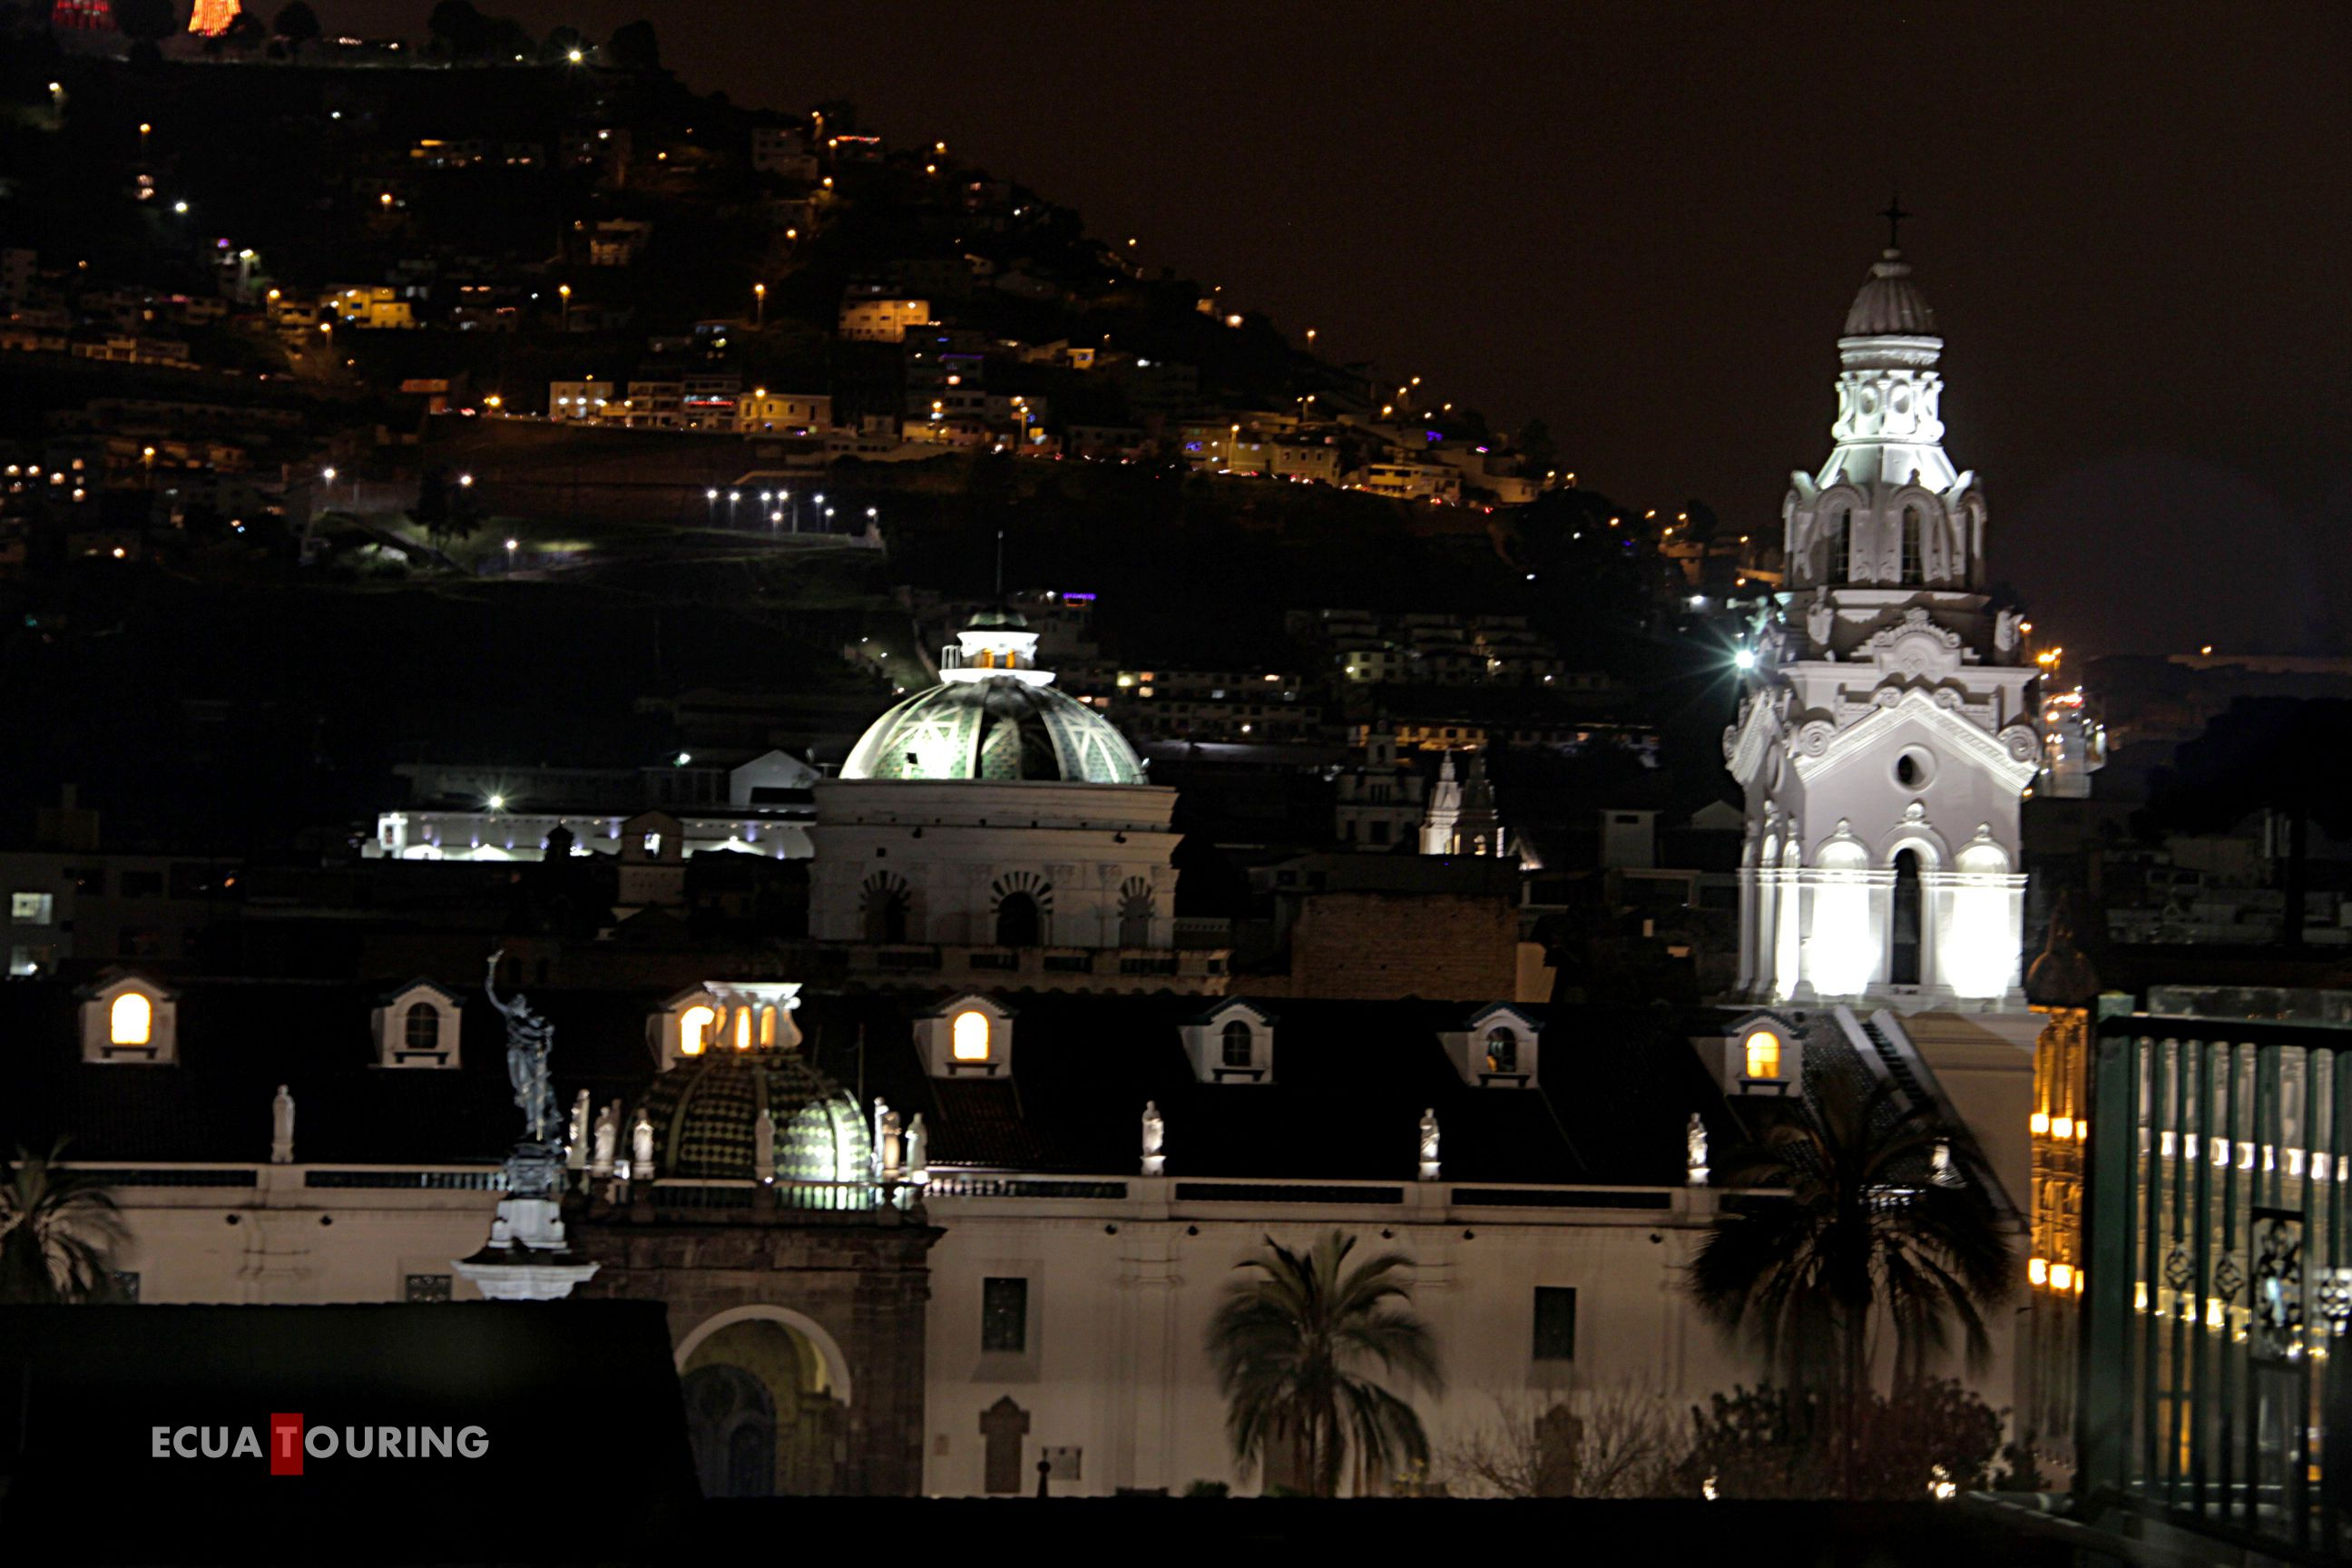 Old Quito Night Out, ecuatouring, quito oldtown, quito at night, plaza de la independencia quito, plaza grande, palacio de corondelet, palacio presidencial, palacio presidencial, el gallo de la catedral, Quito night tour, quito at night, quito oldtown at night